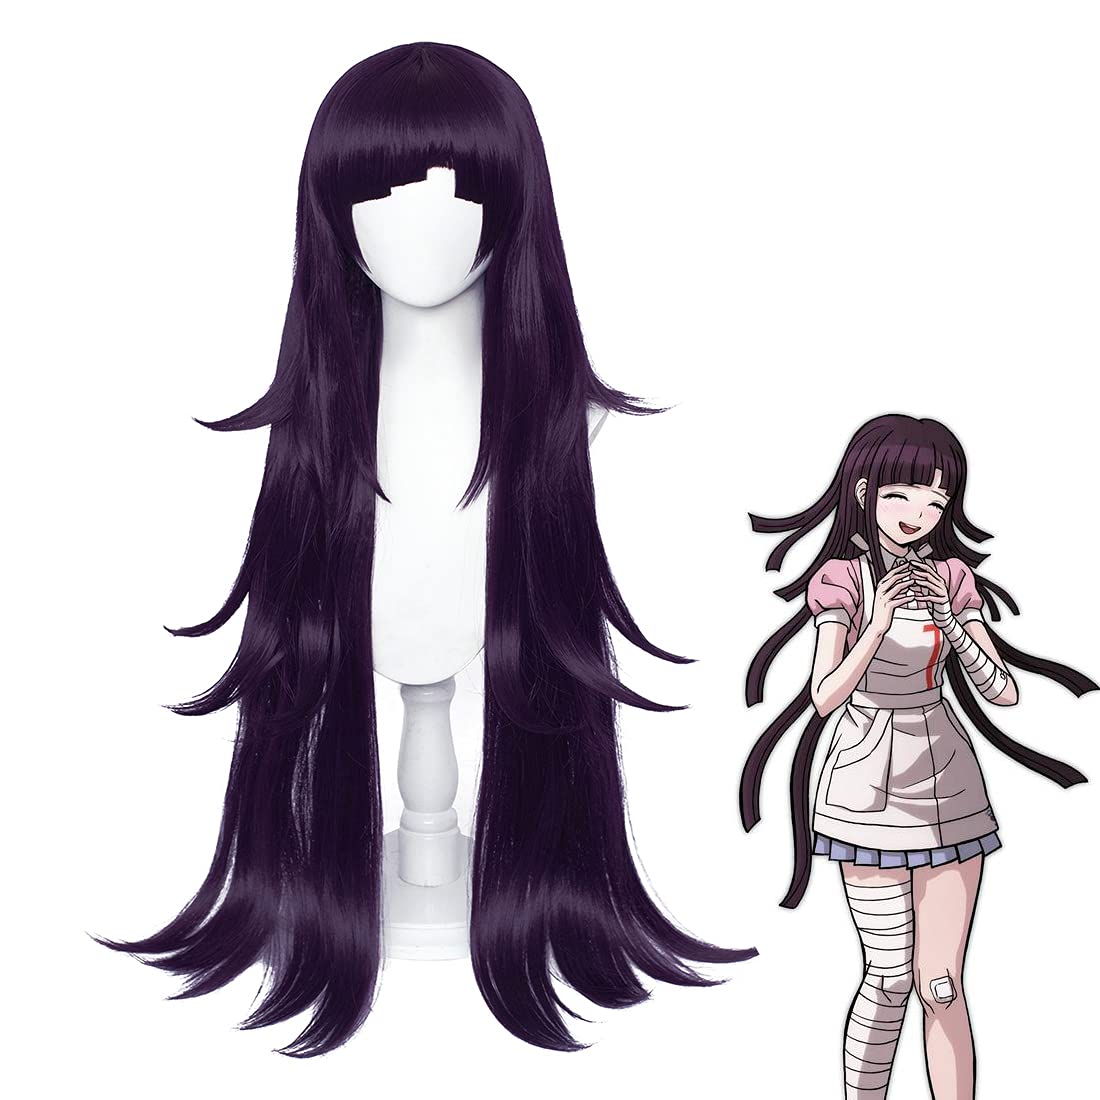 Mikan Tsumiki Cosplay Wig Complete Free Shipping [Alternative dealer] for Dark Long Wi Women Purple